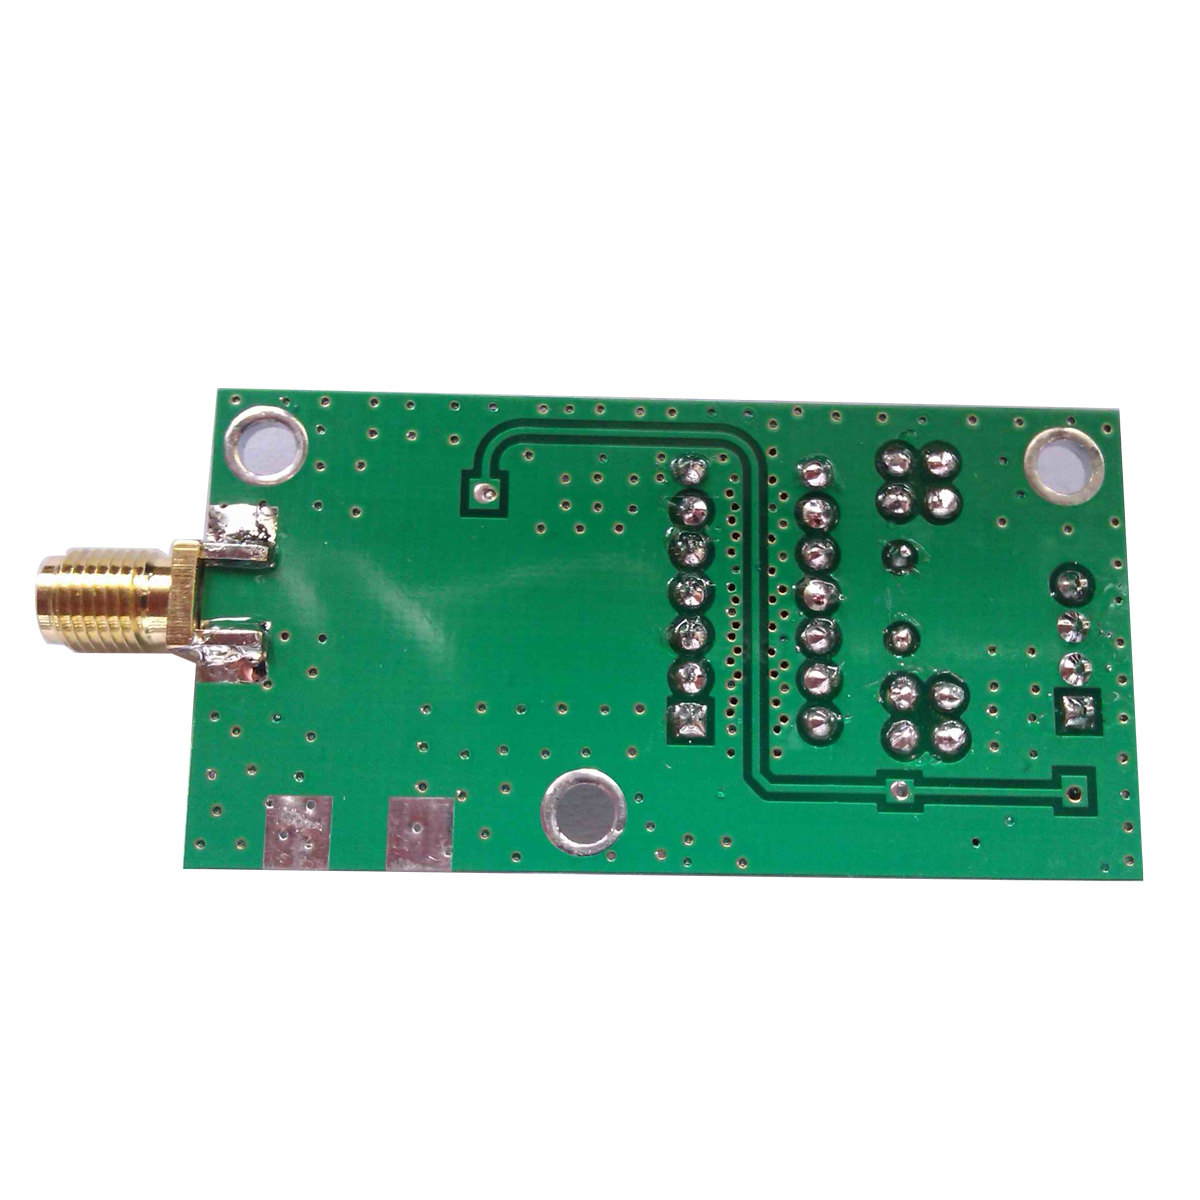 30 70mhz Vco Broadband Rf Signal Generator Voltage Controlled Voltagecontrolled Oscillator Using The Timer 555 Is Shown In 10dbm